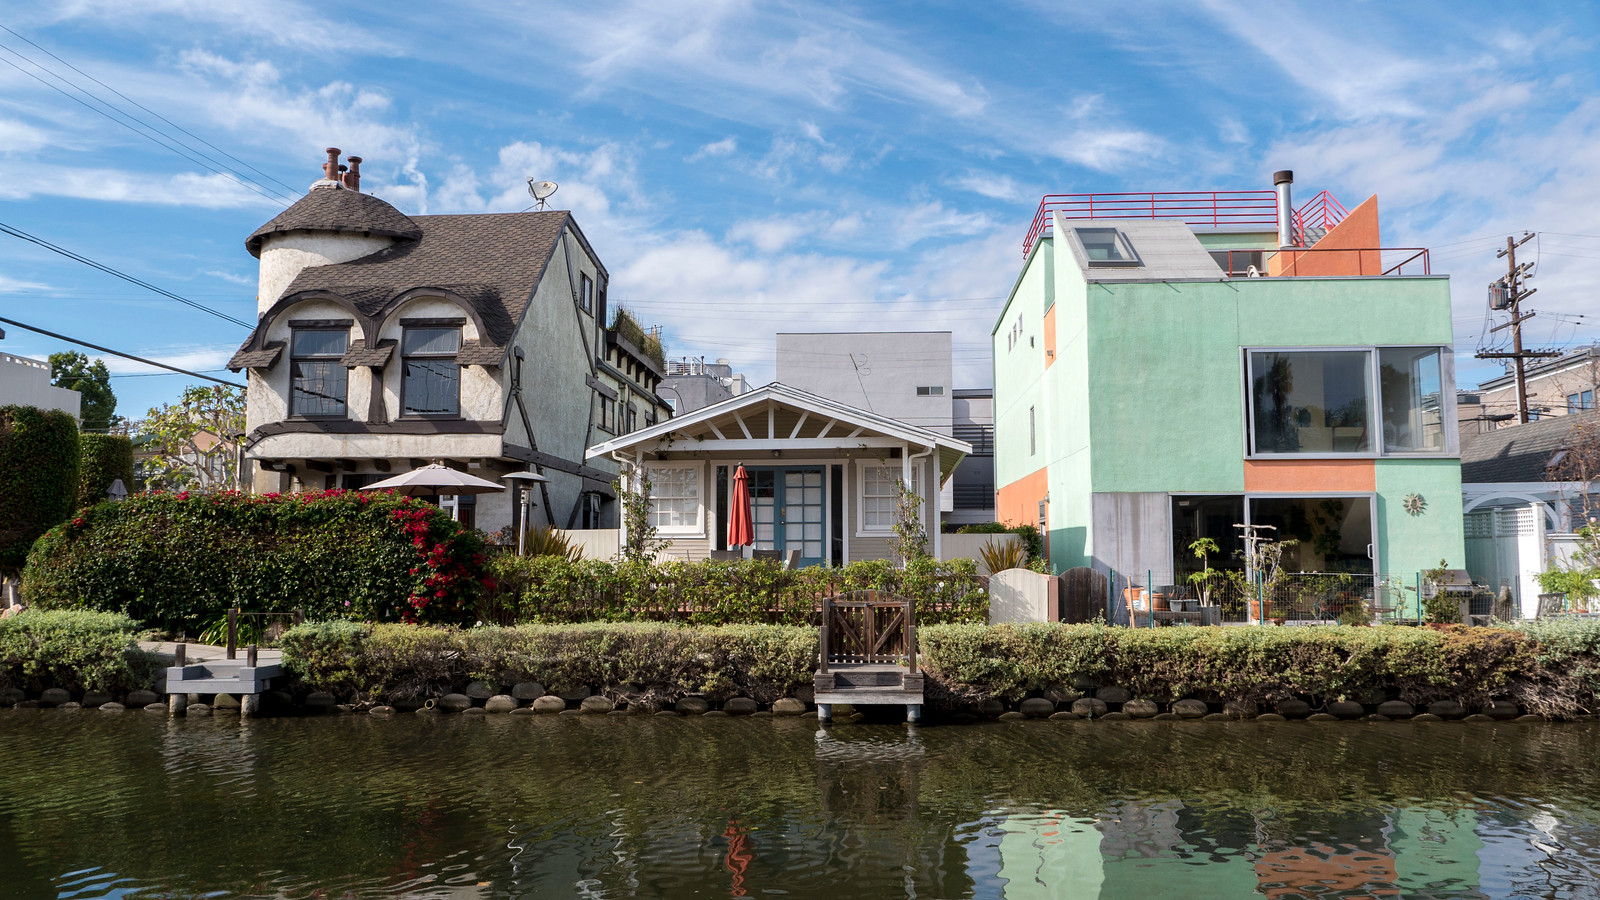 Venice Canals - one day in LA